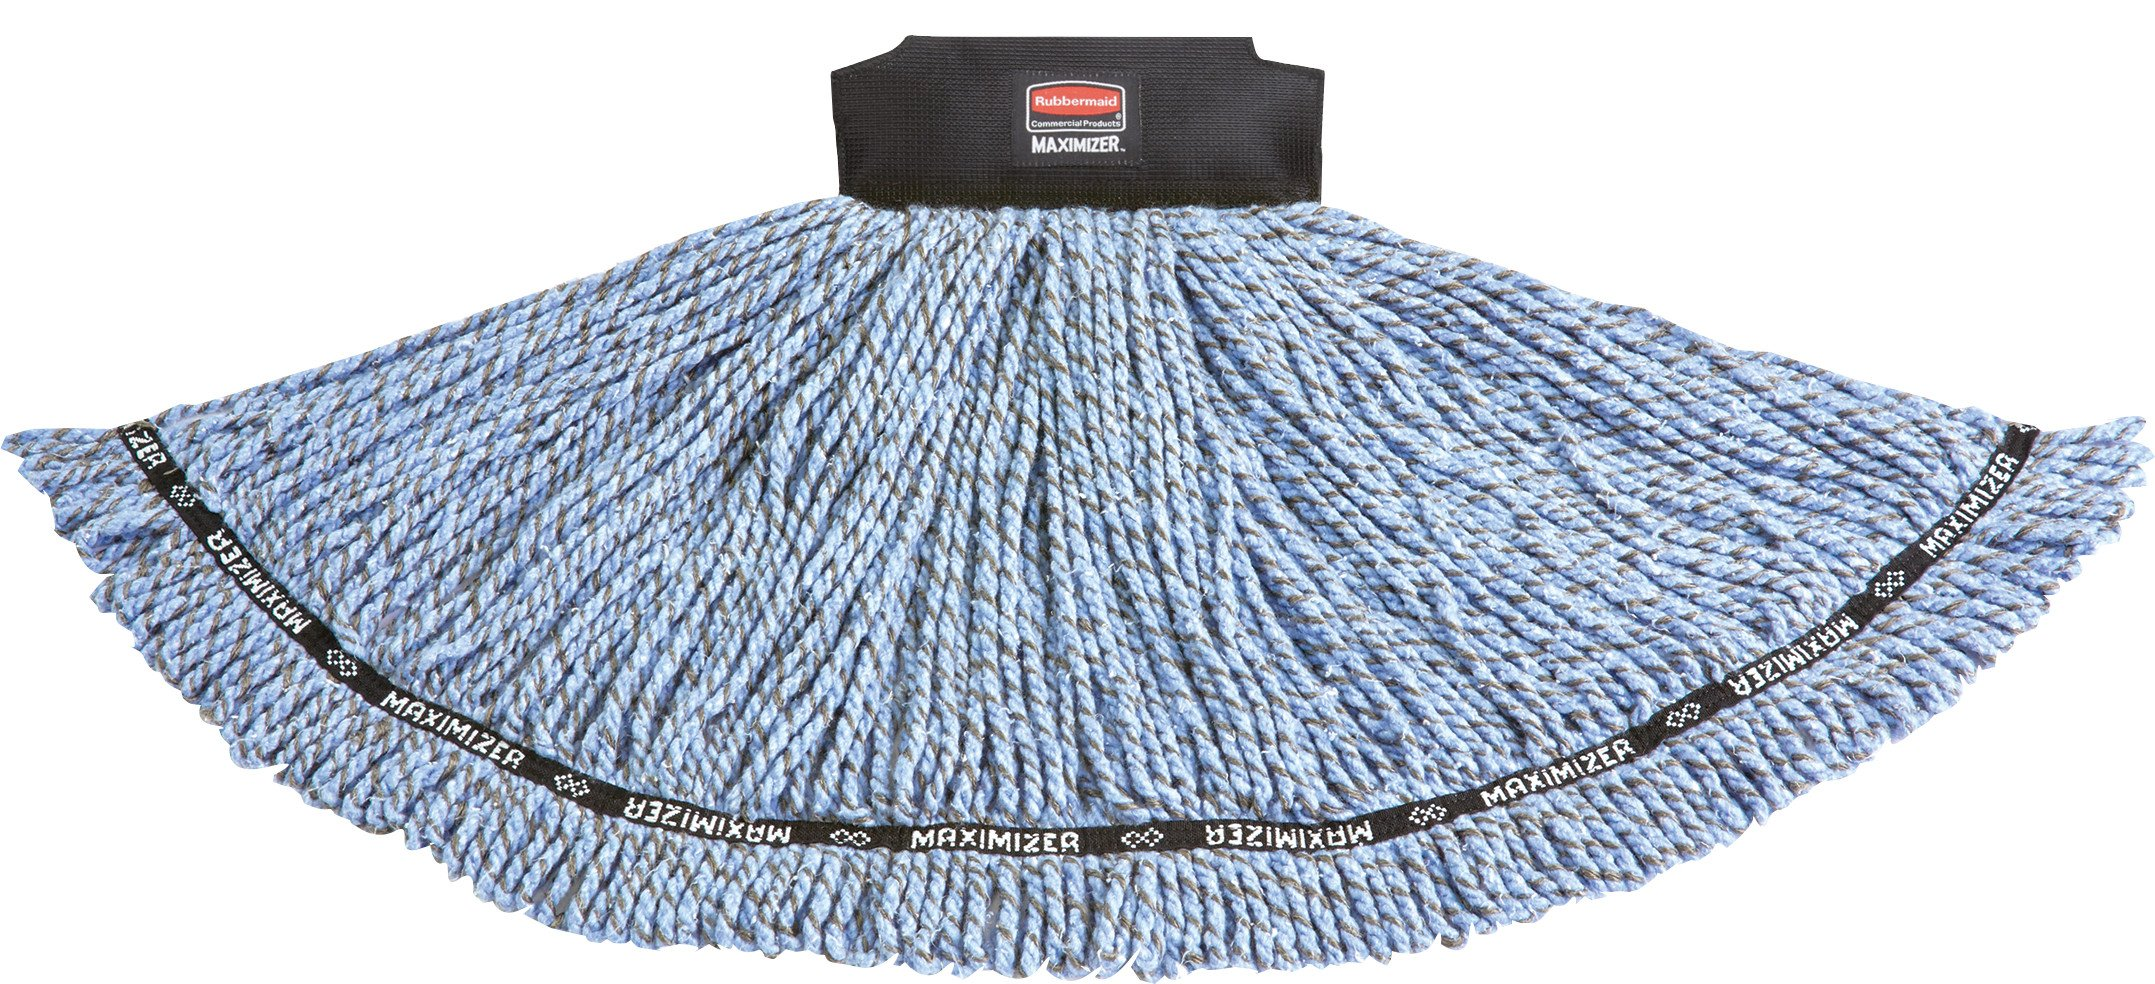 Rubbermaid Commercial 1924803 Maximizer Mop Head, Shrinkless Blend, Medium, Blue by Rubbermaid Commercial Products